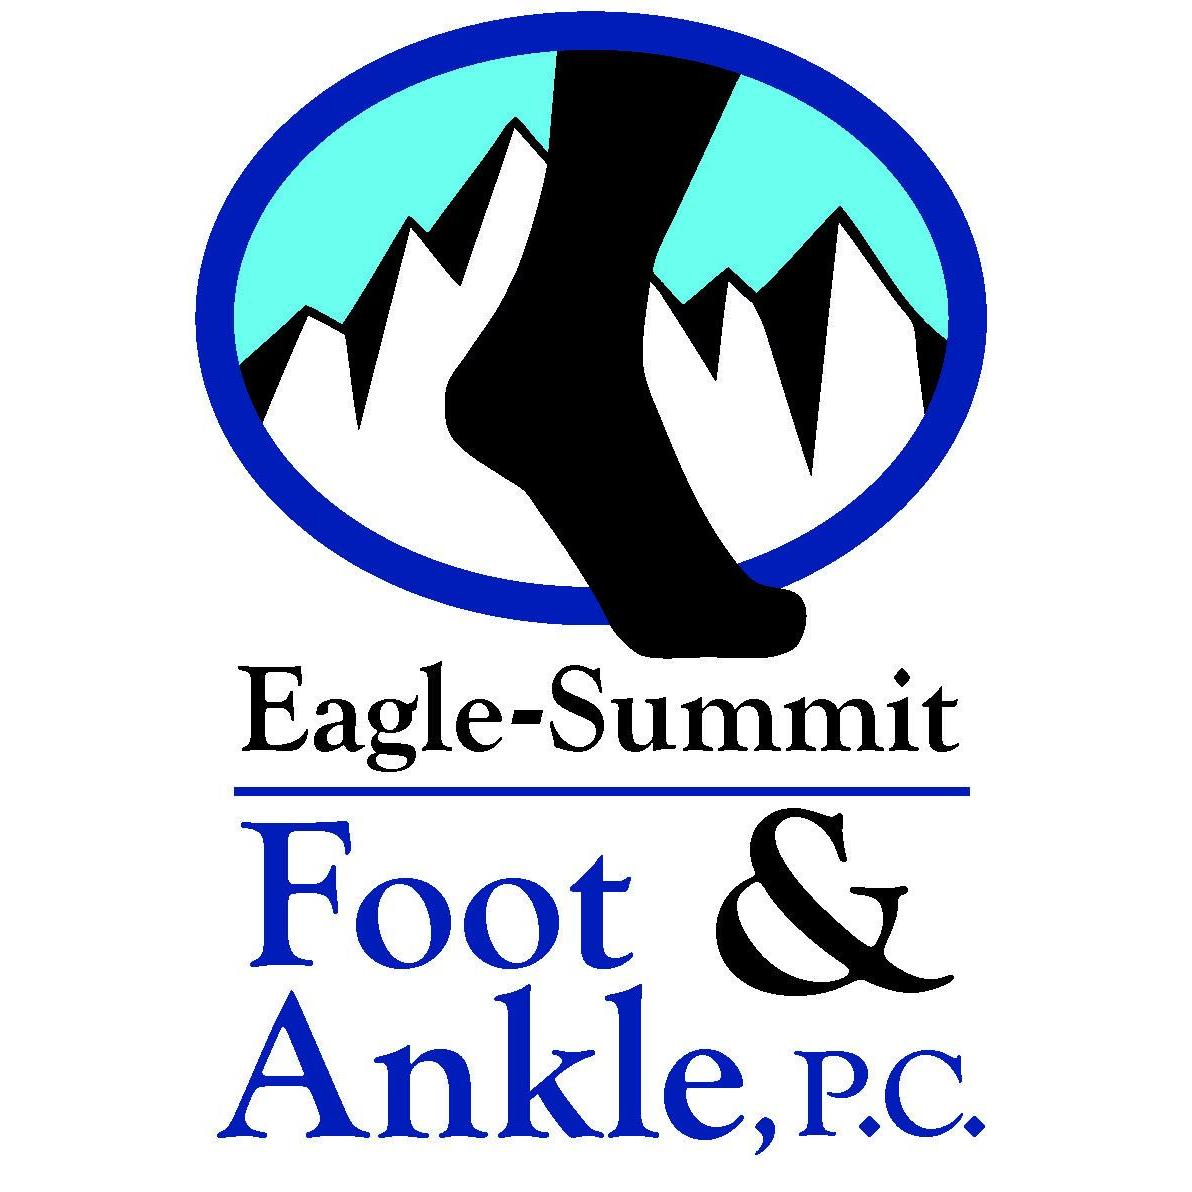 Eagle-Summit Foot & Ankle